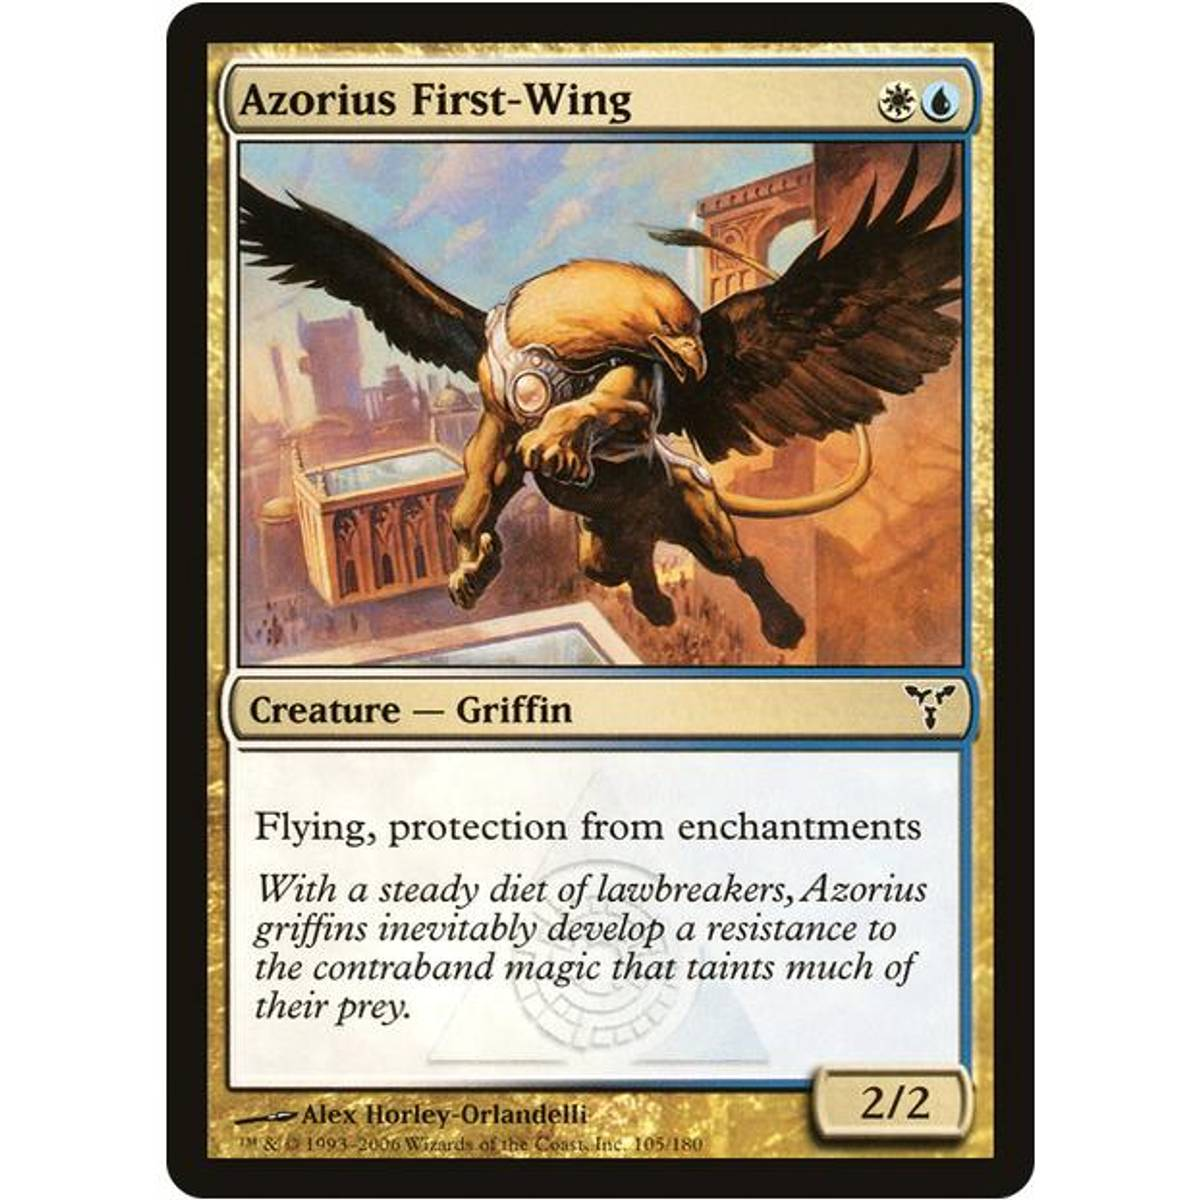 Azorius First-Wing